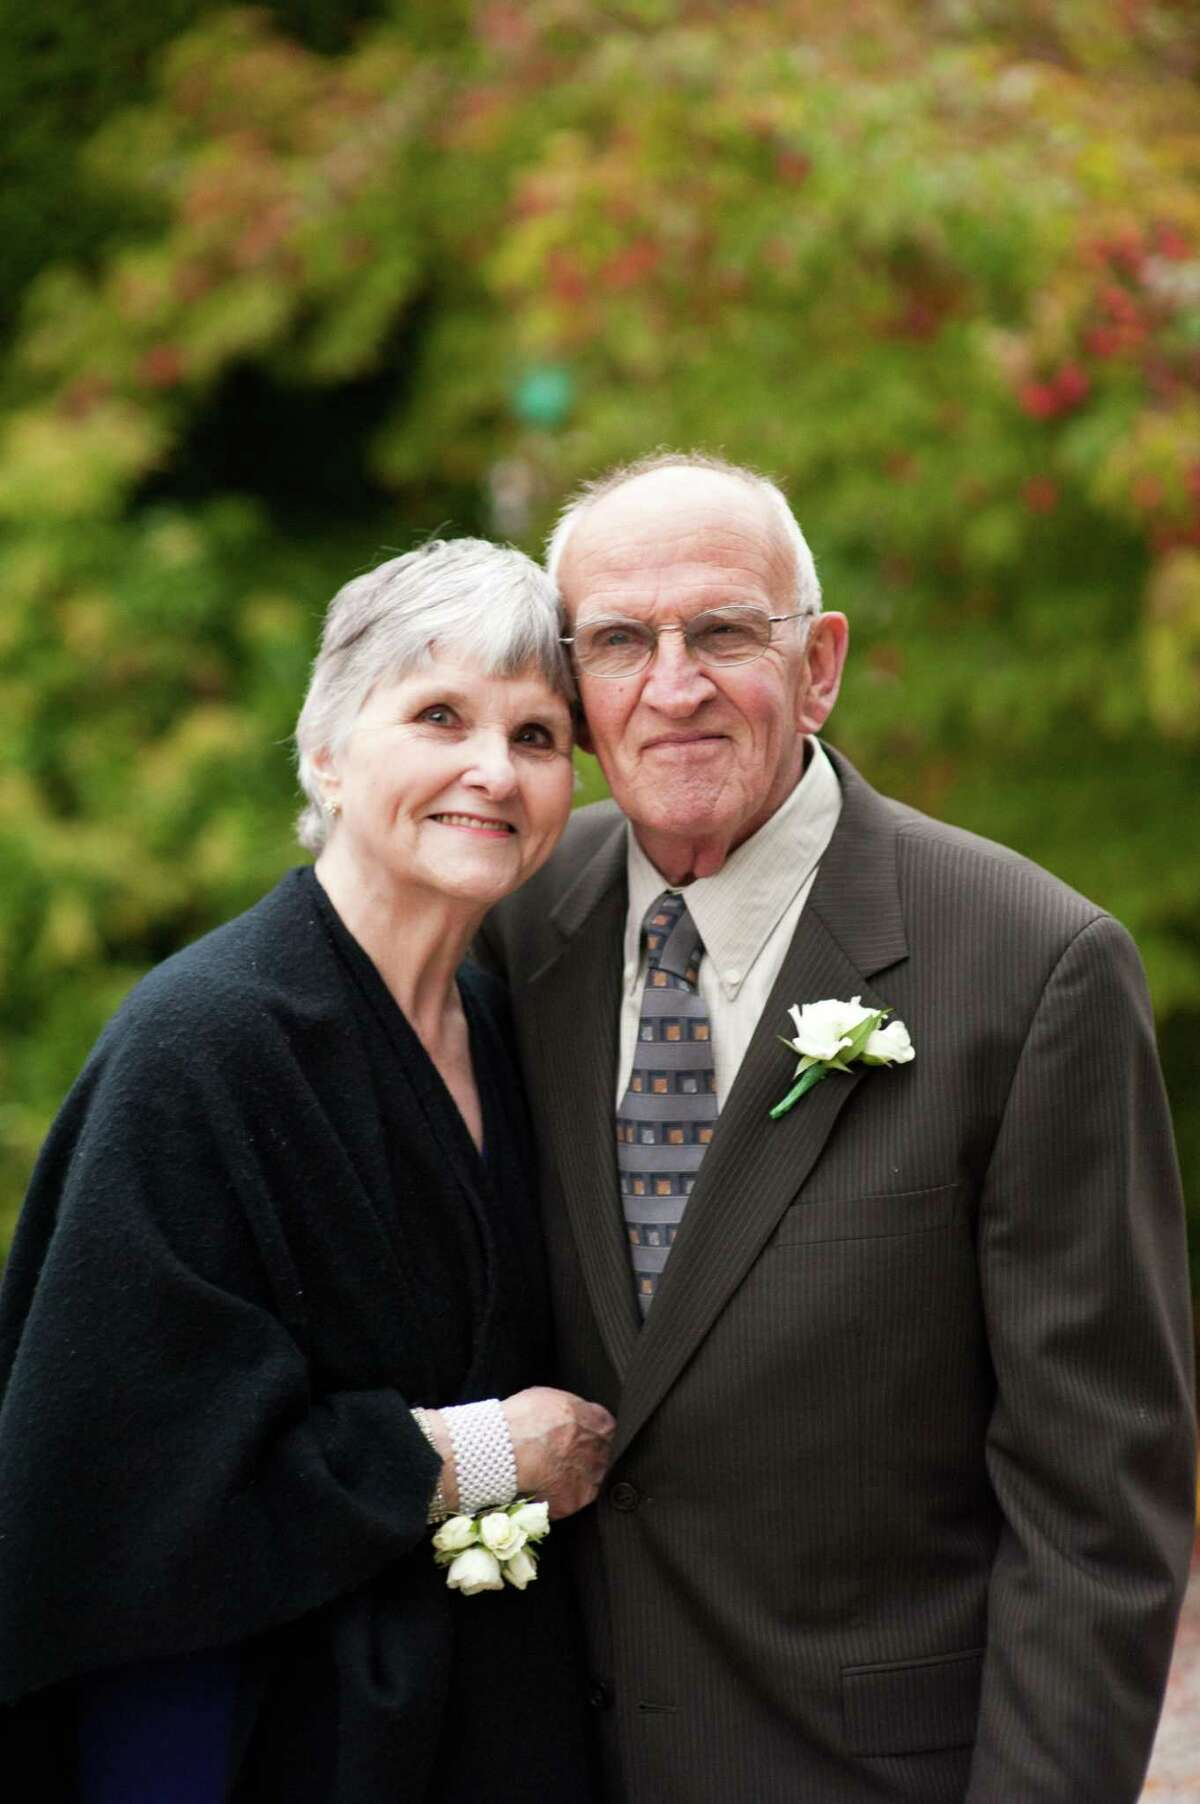 Fred and Patty Scribner of New Milford will celebrate their 60th wedding anniversary July 22.